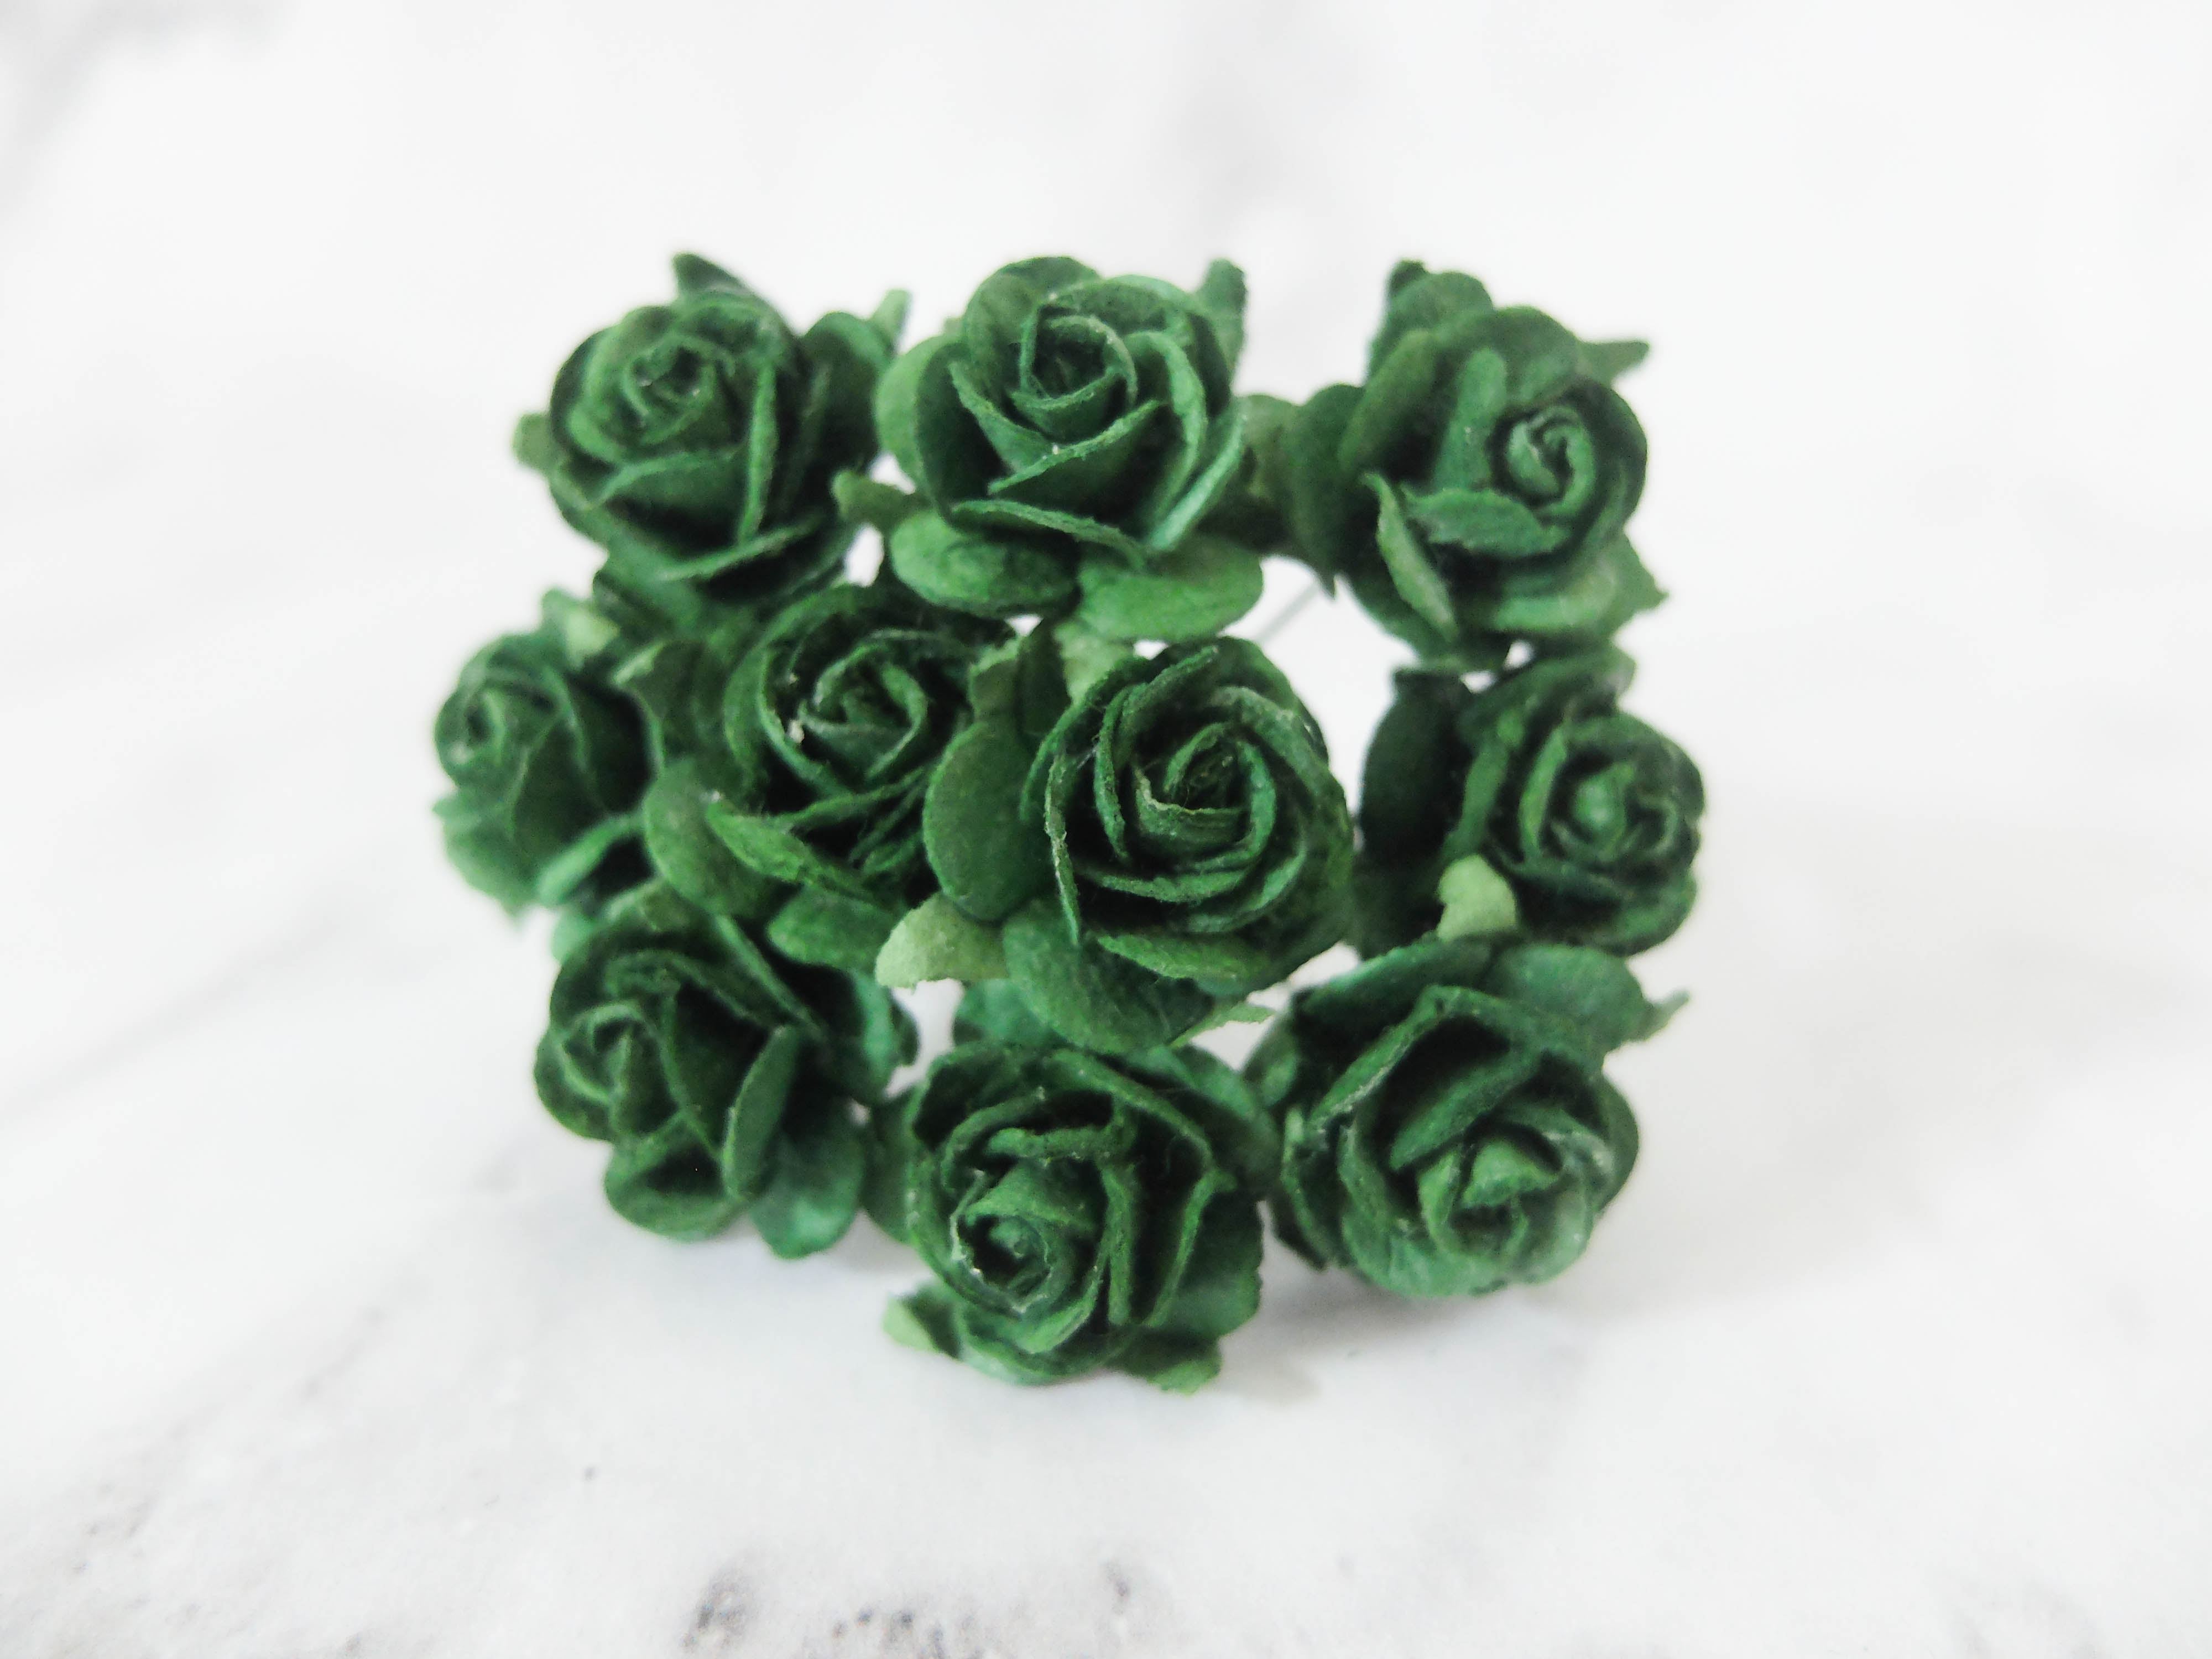 2 Cm Paper Roses 20mm Paper Flowers With Wire Stems